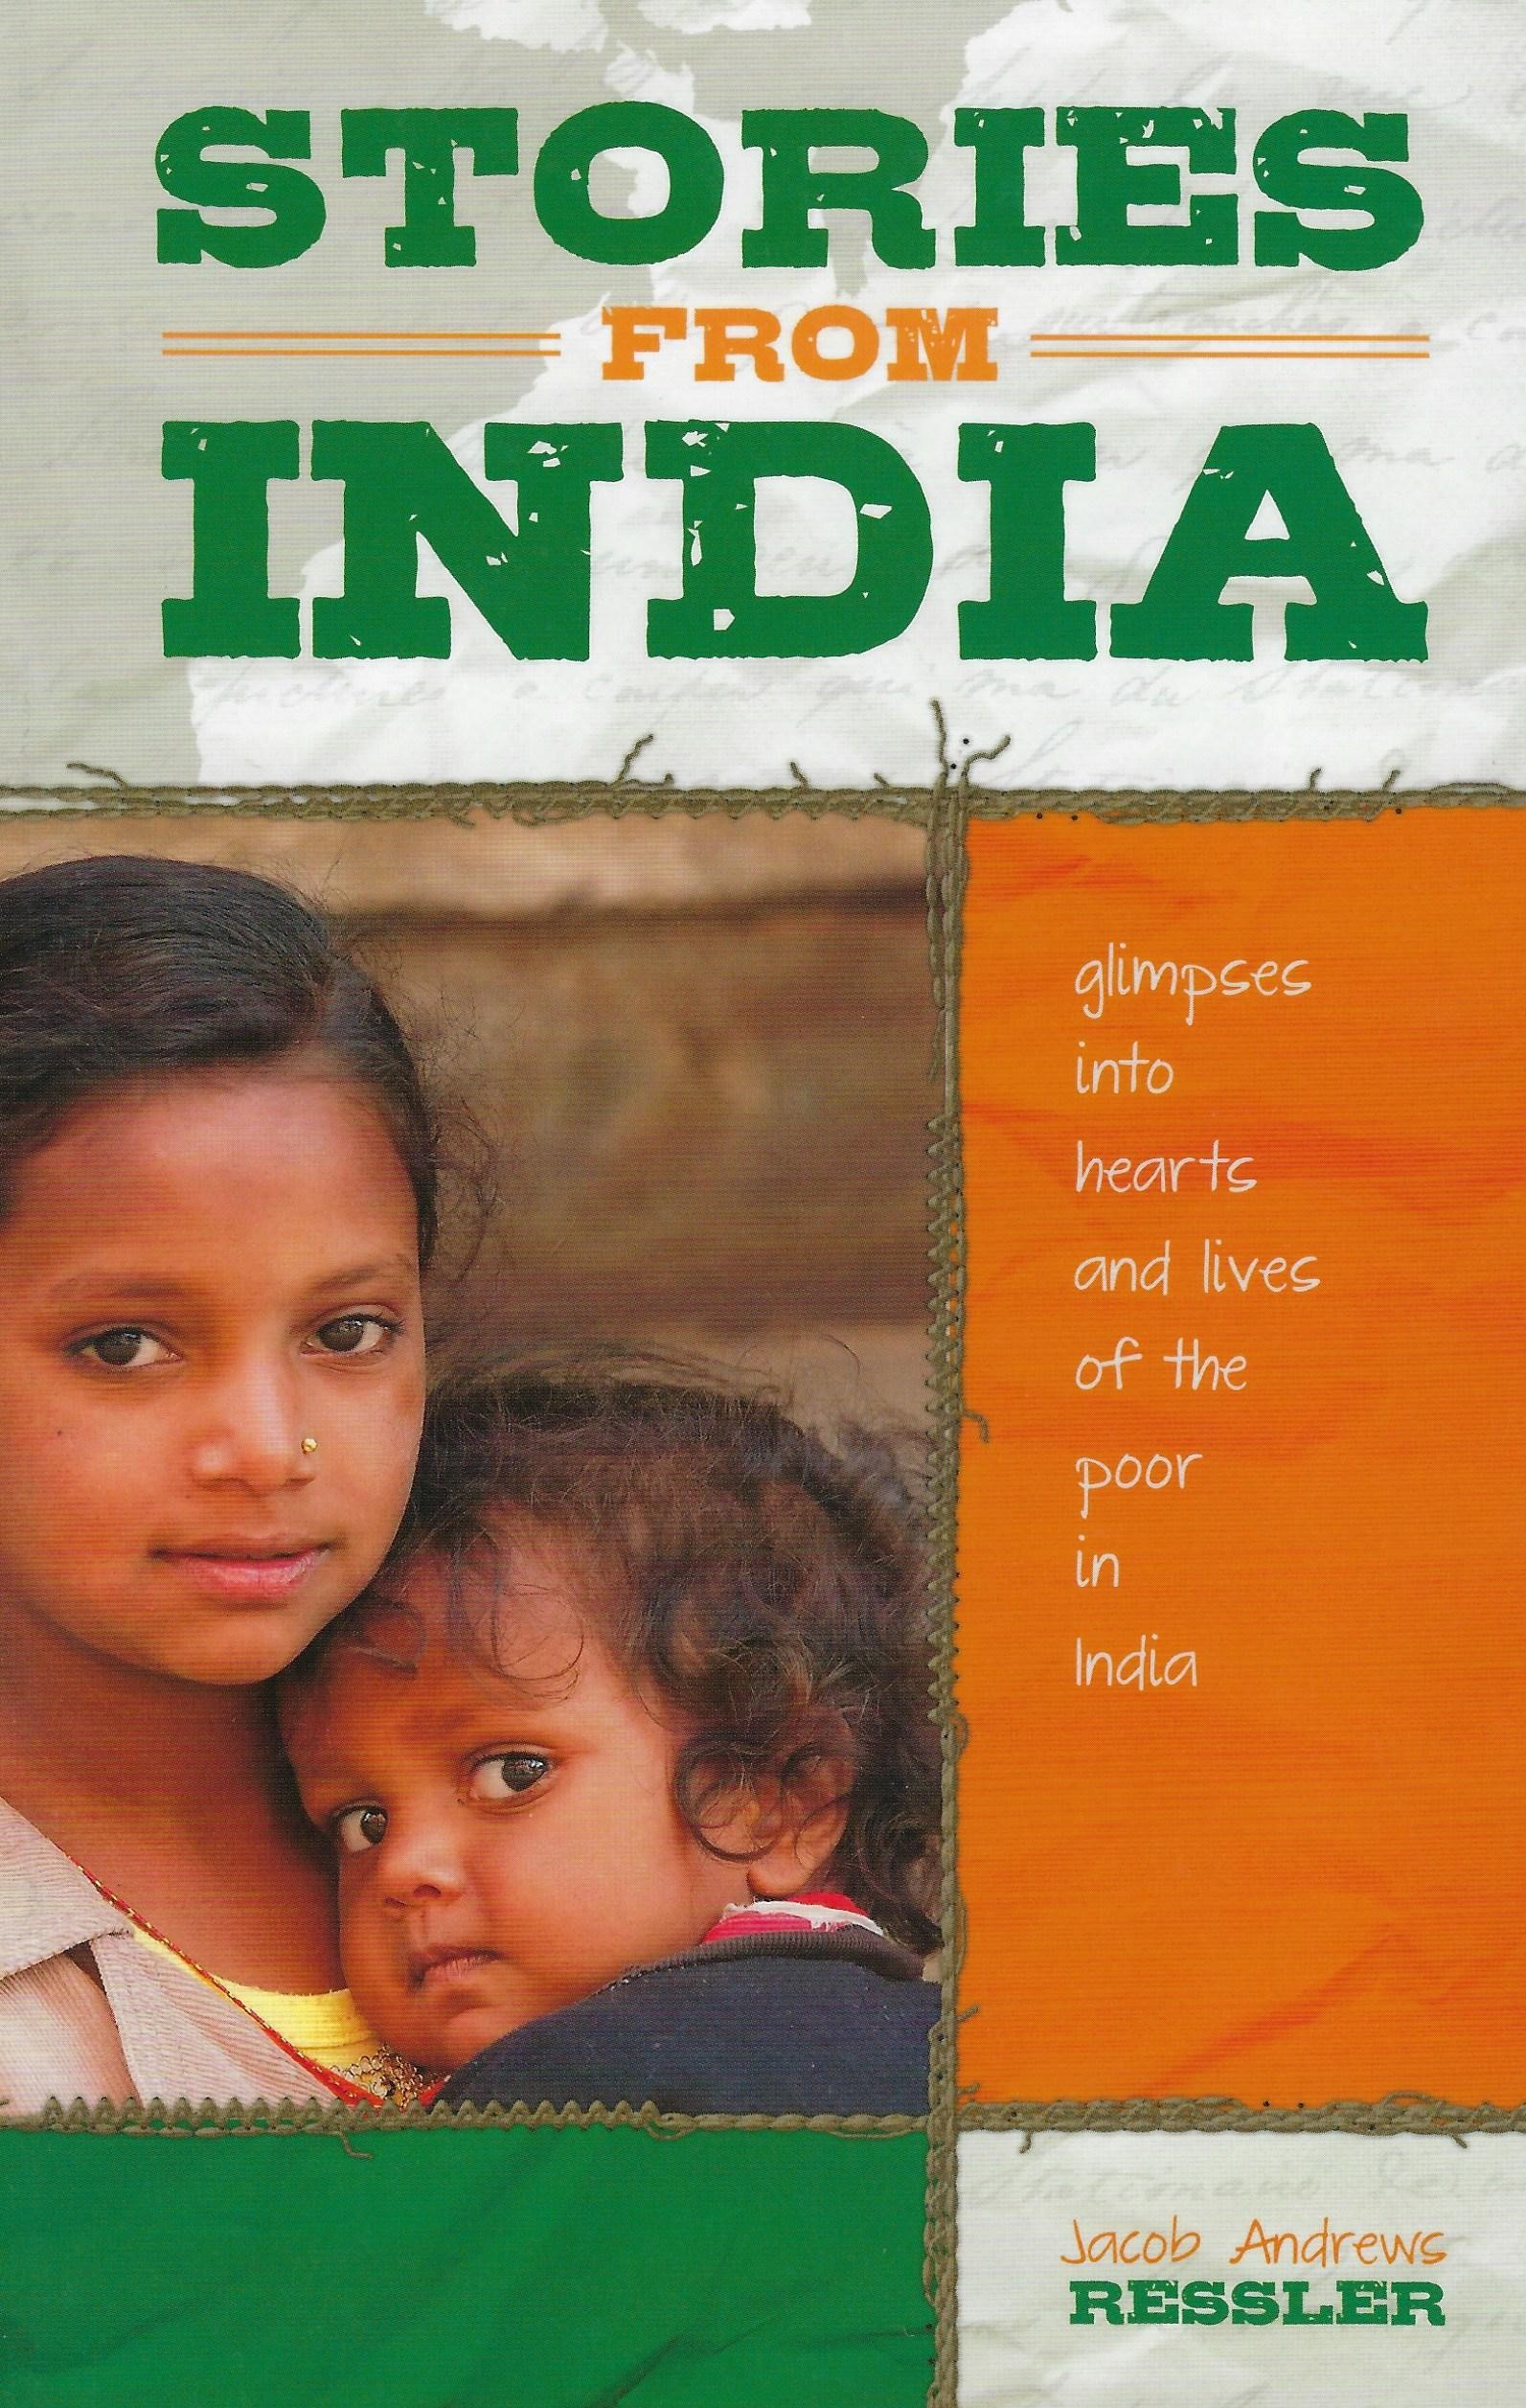 STORIES FROM INDIA Jacob Andrews Ressler